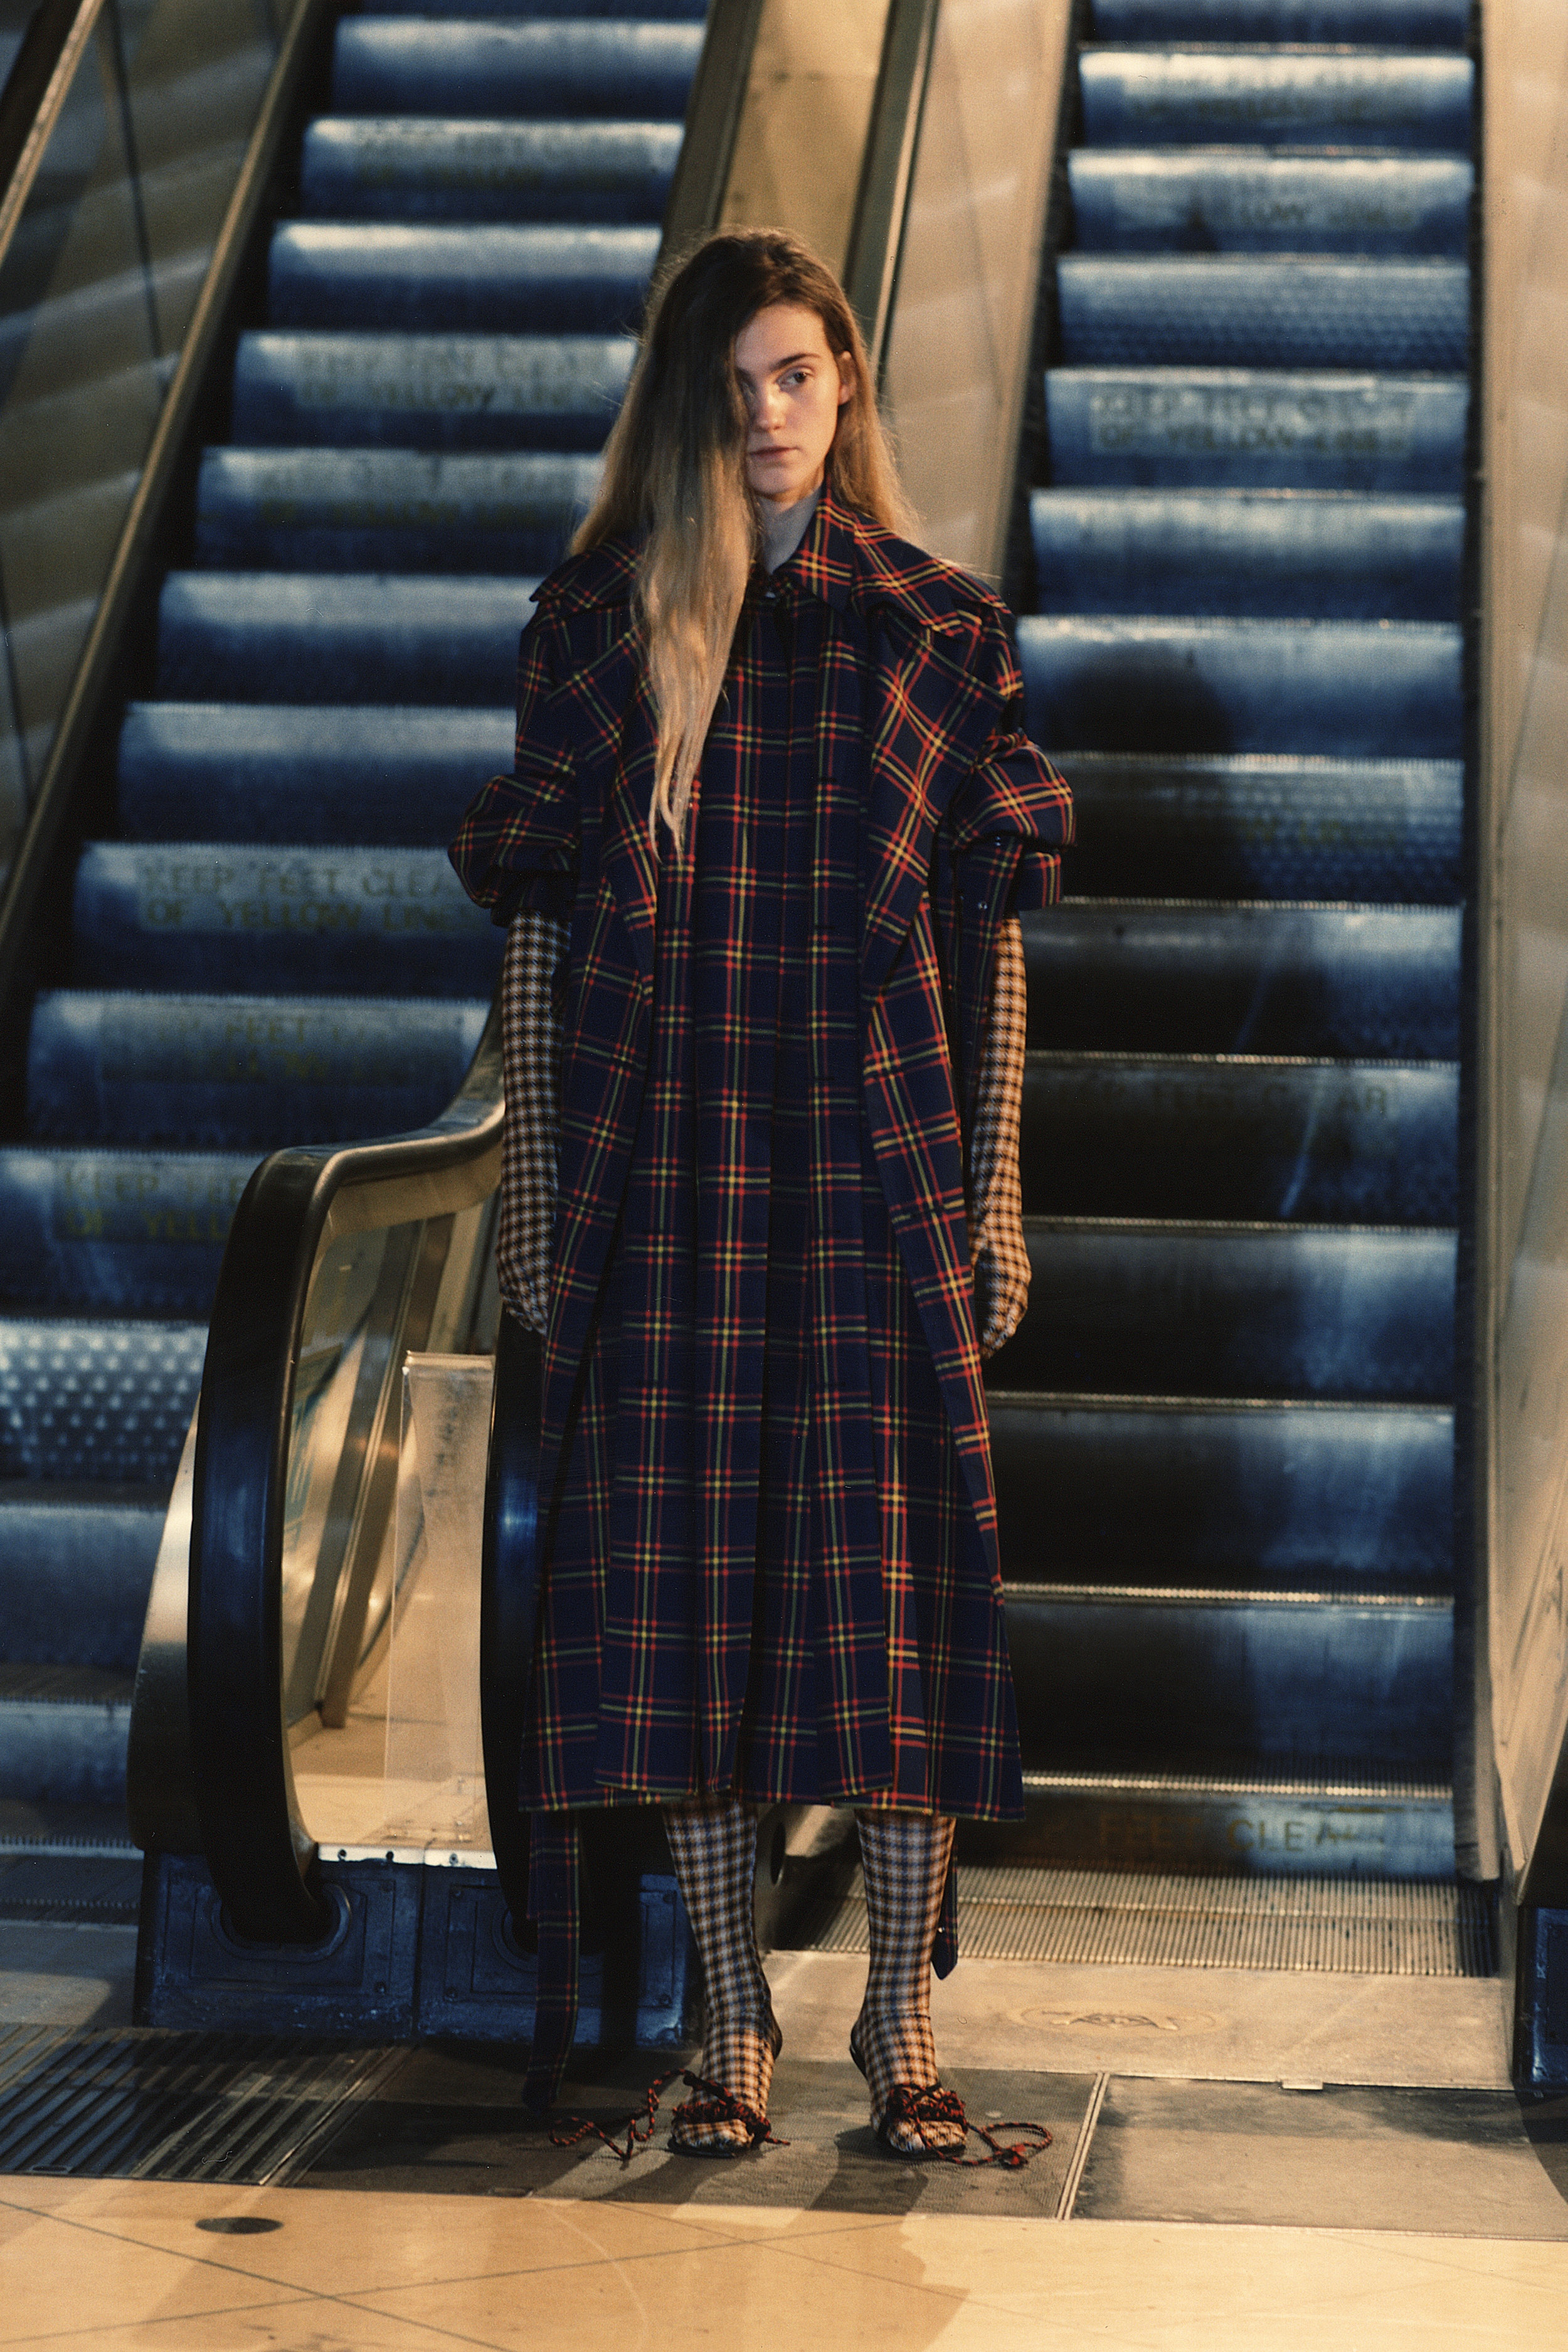 rokh_aw18_fashion_collection_magazine_vogue_19.jpg